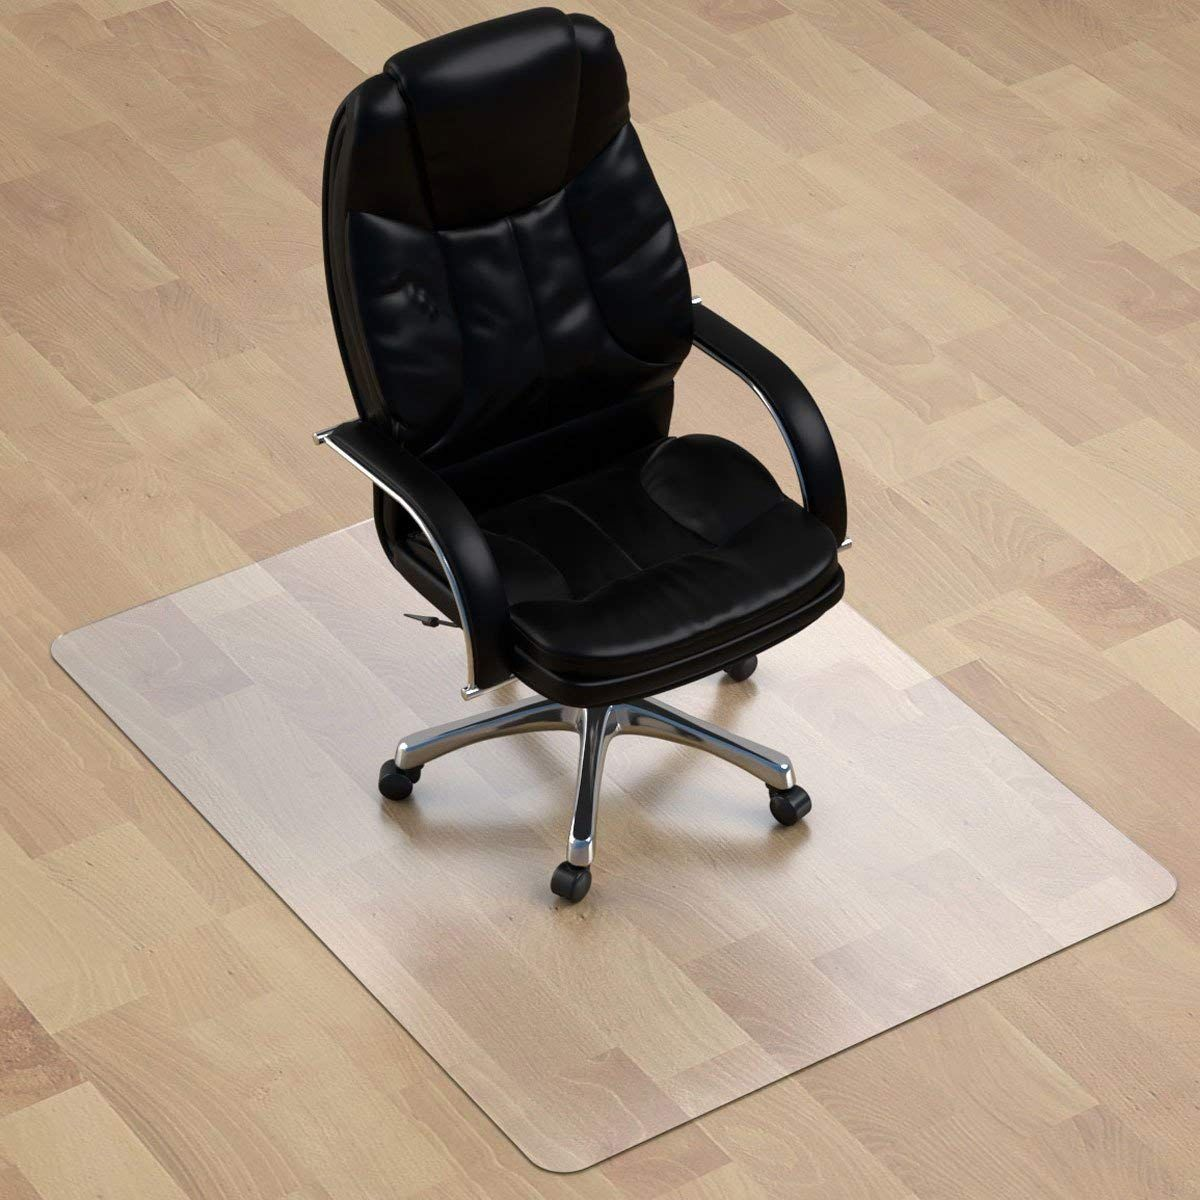 Thickest Chair Mat For Hardwood Floor 1 8 Thick 47 X 35 Crystal